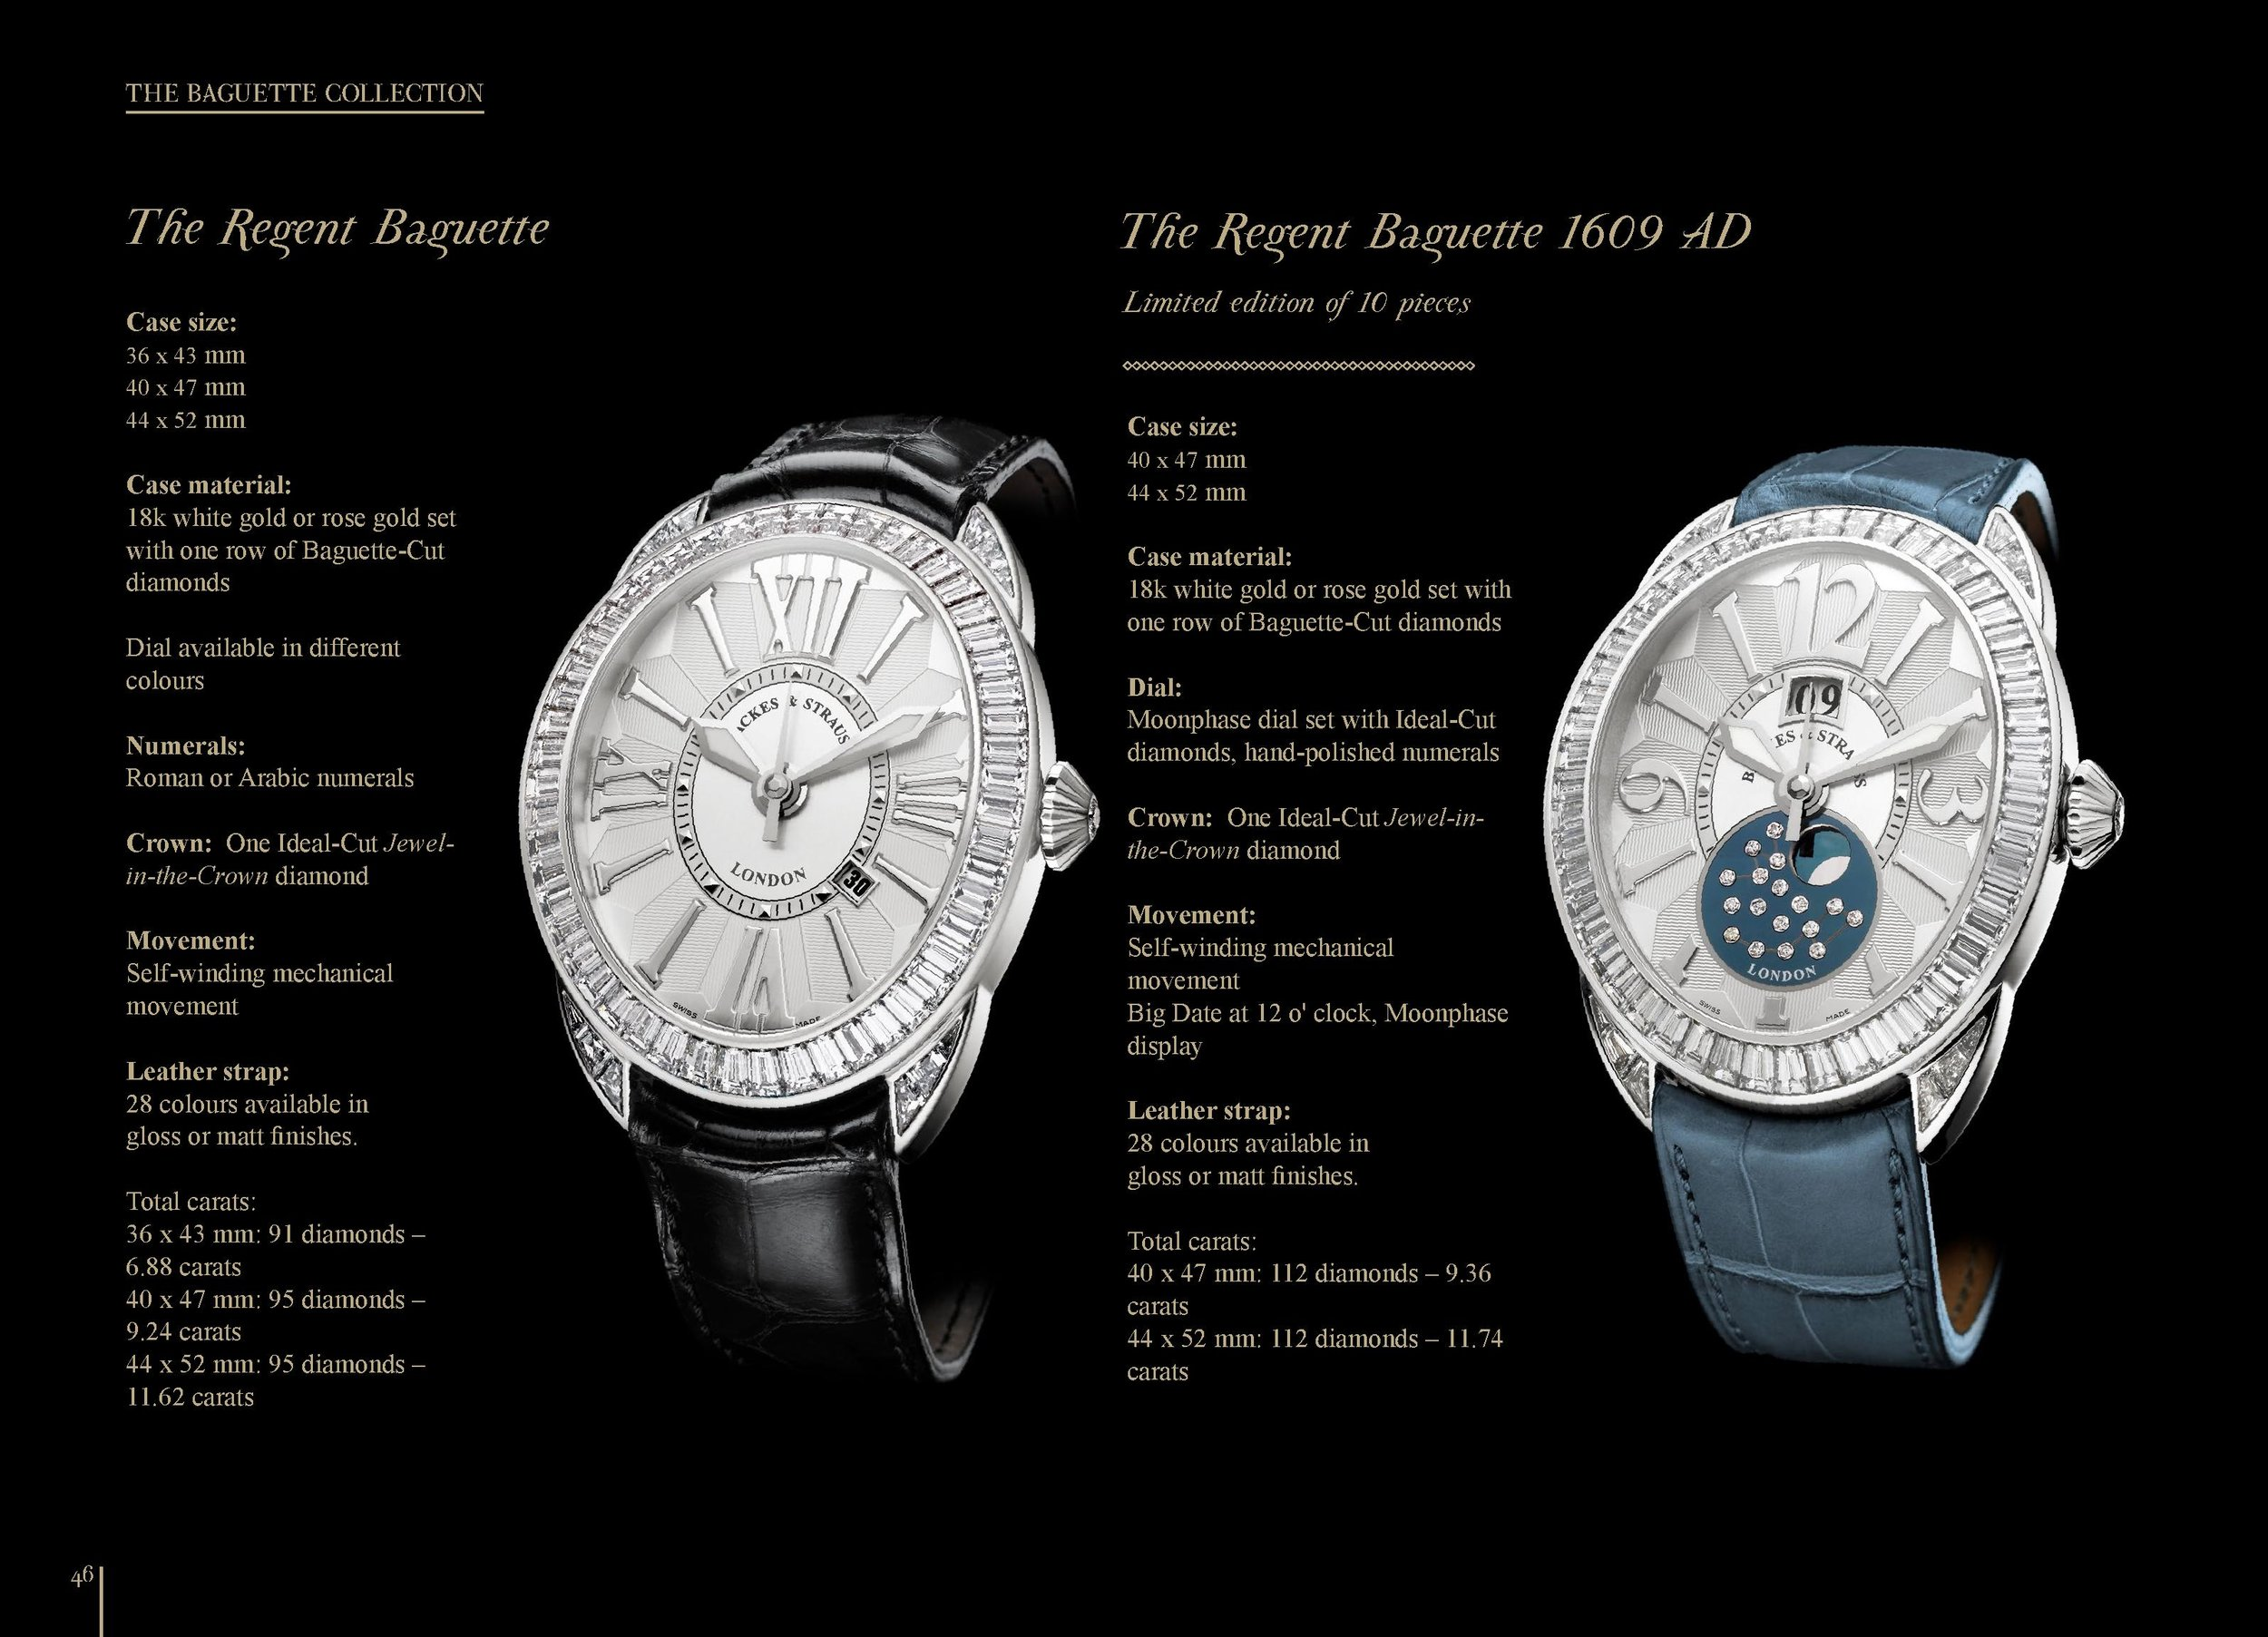 Regent Baguette 4047 and 1609 AD watch